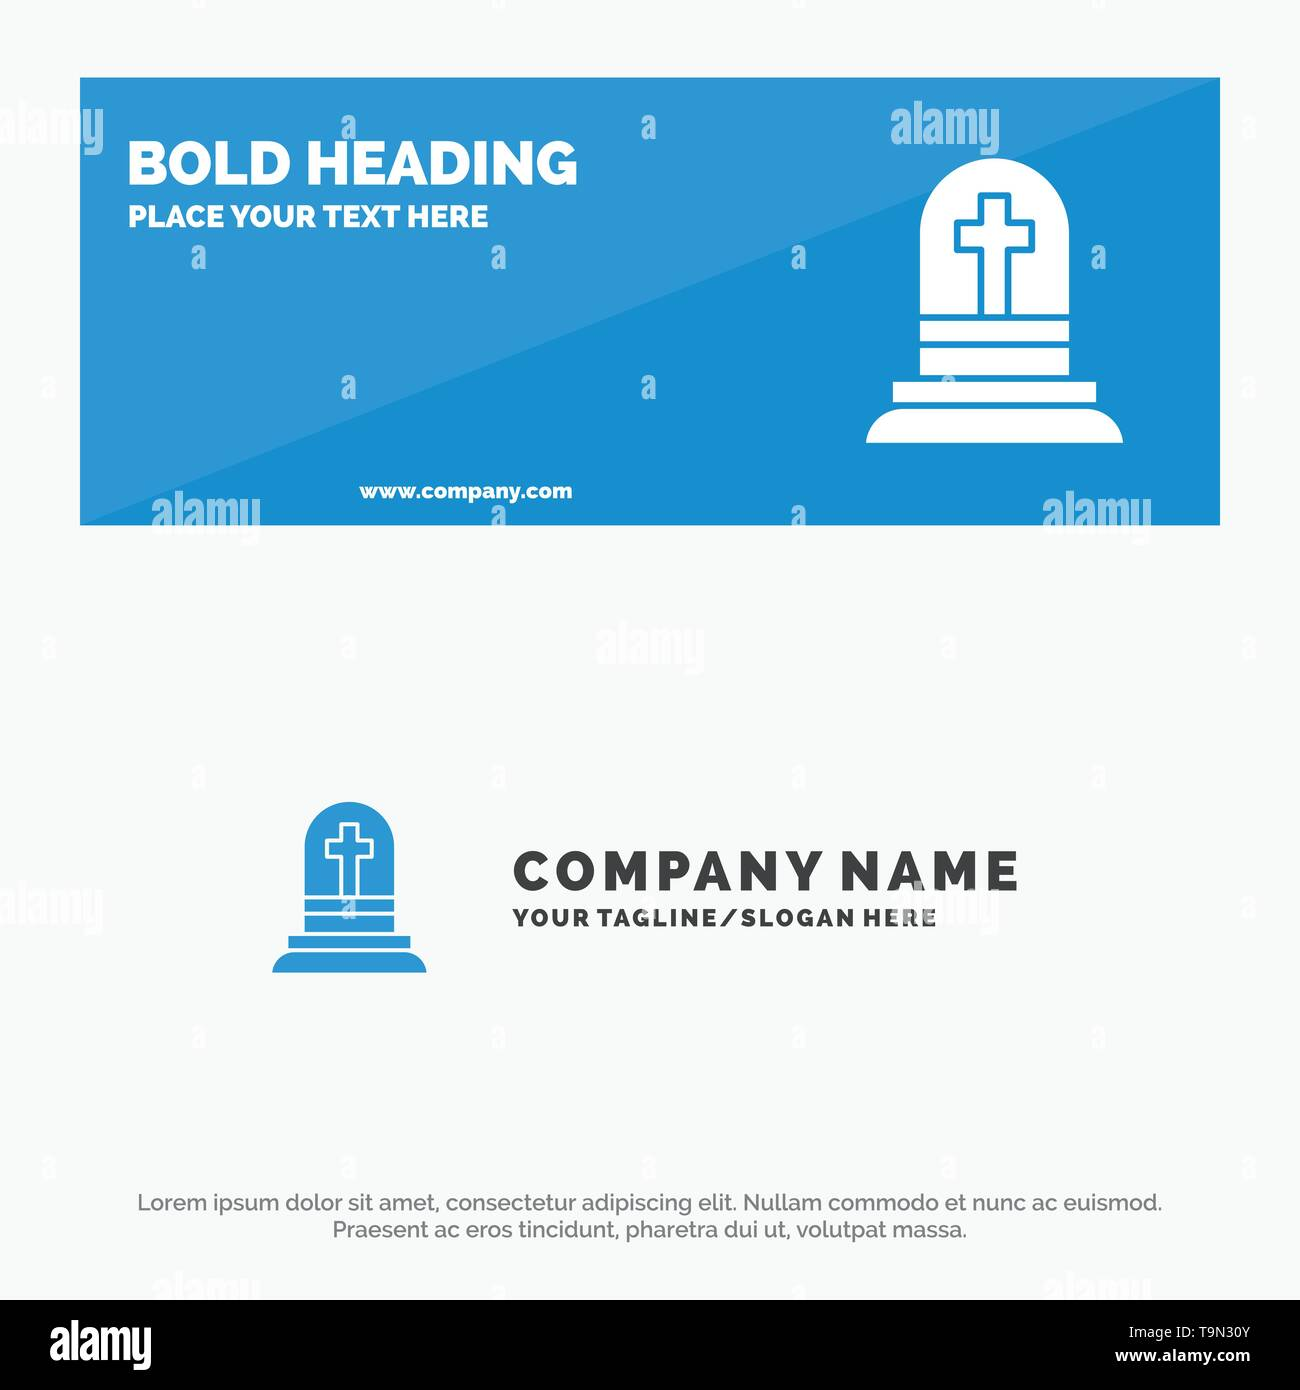 Death, Grave, Gravestone, Rip SOlid Icon Website Banner and Business Logo Template - Stock Image